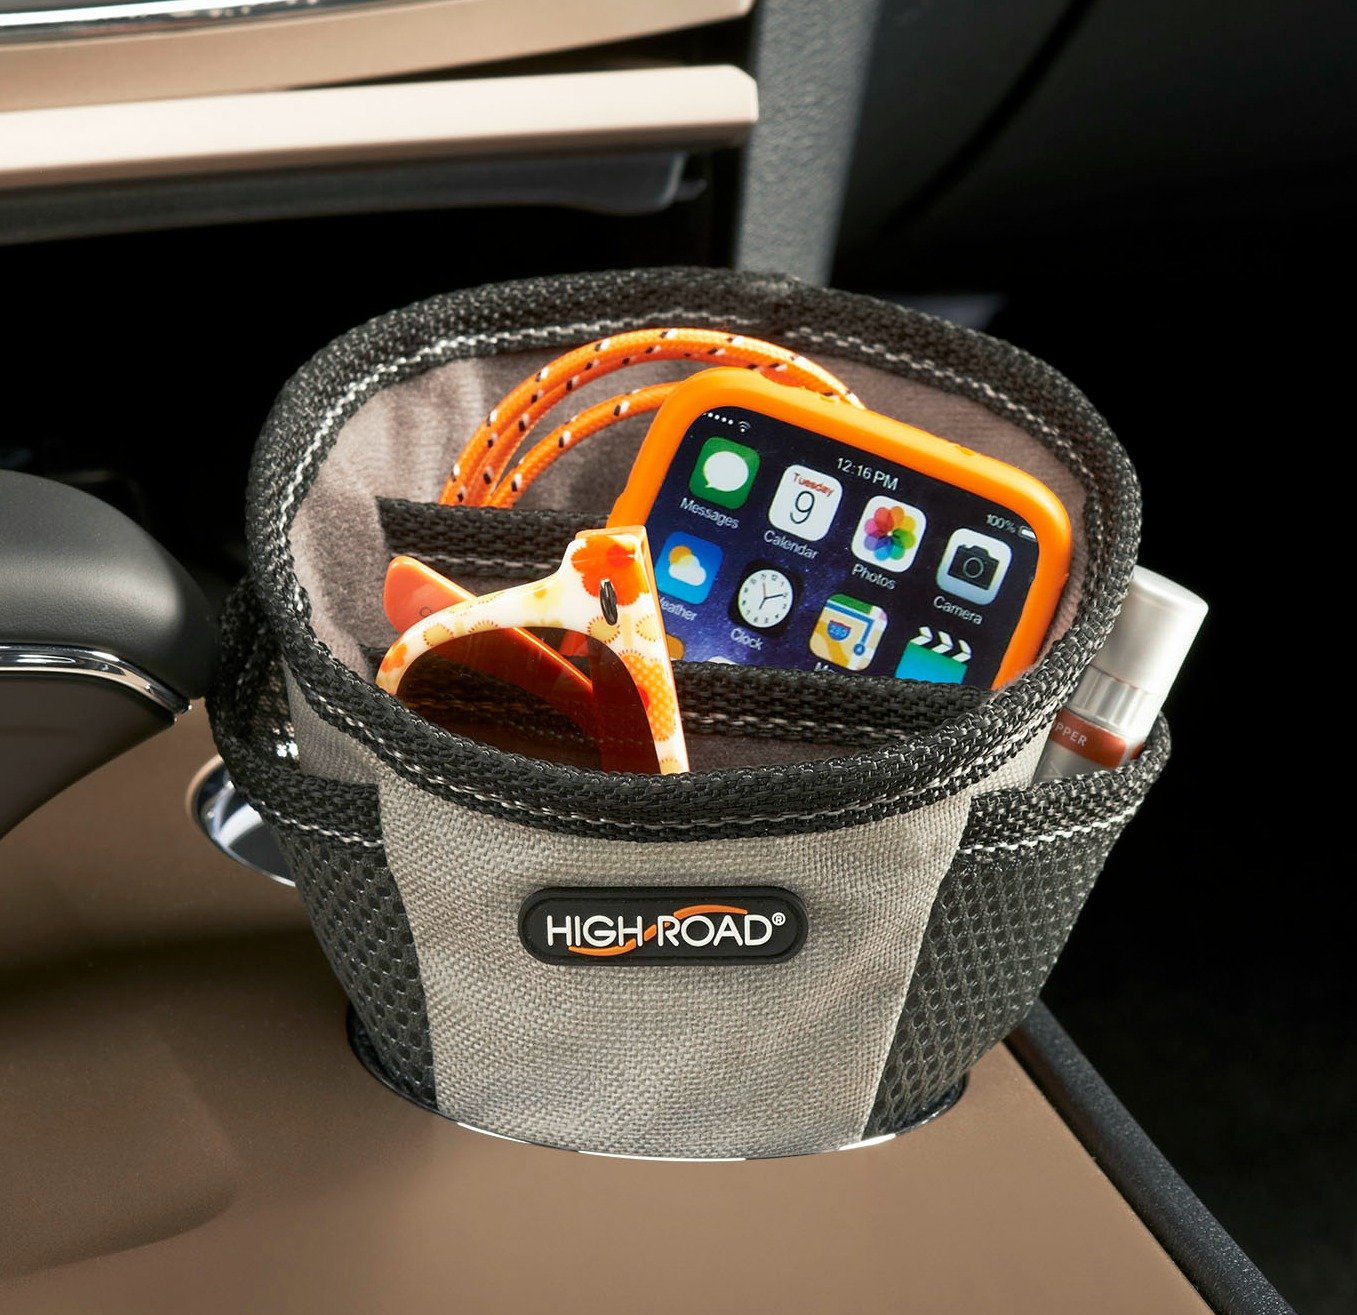 High Road Cupholder Cell Phone Holder and Charging Station